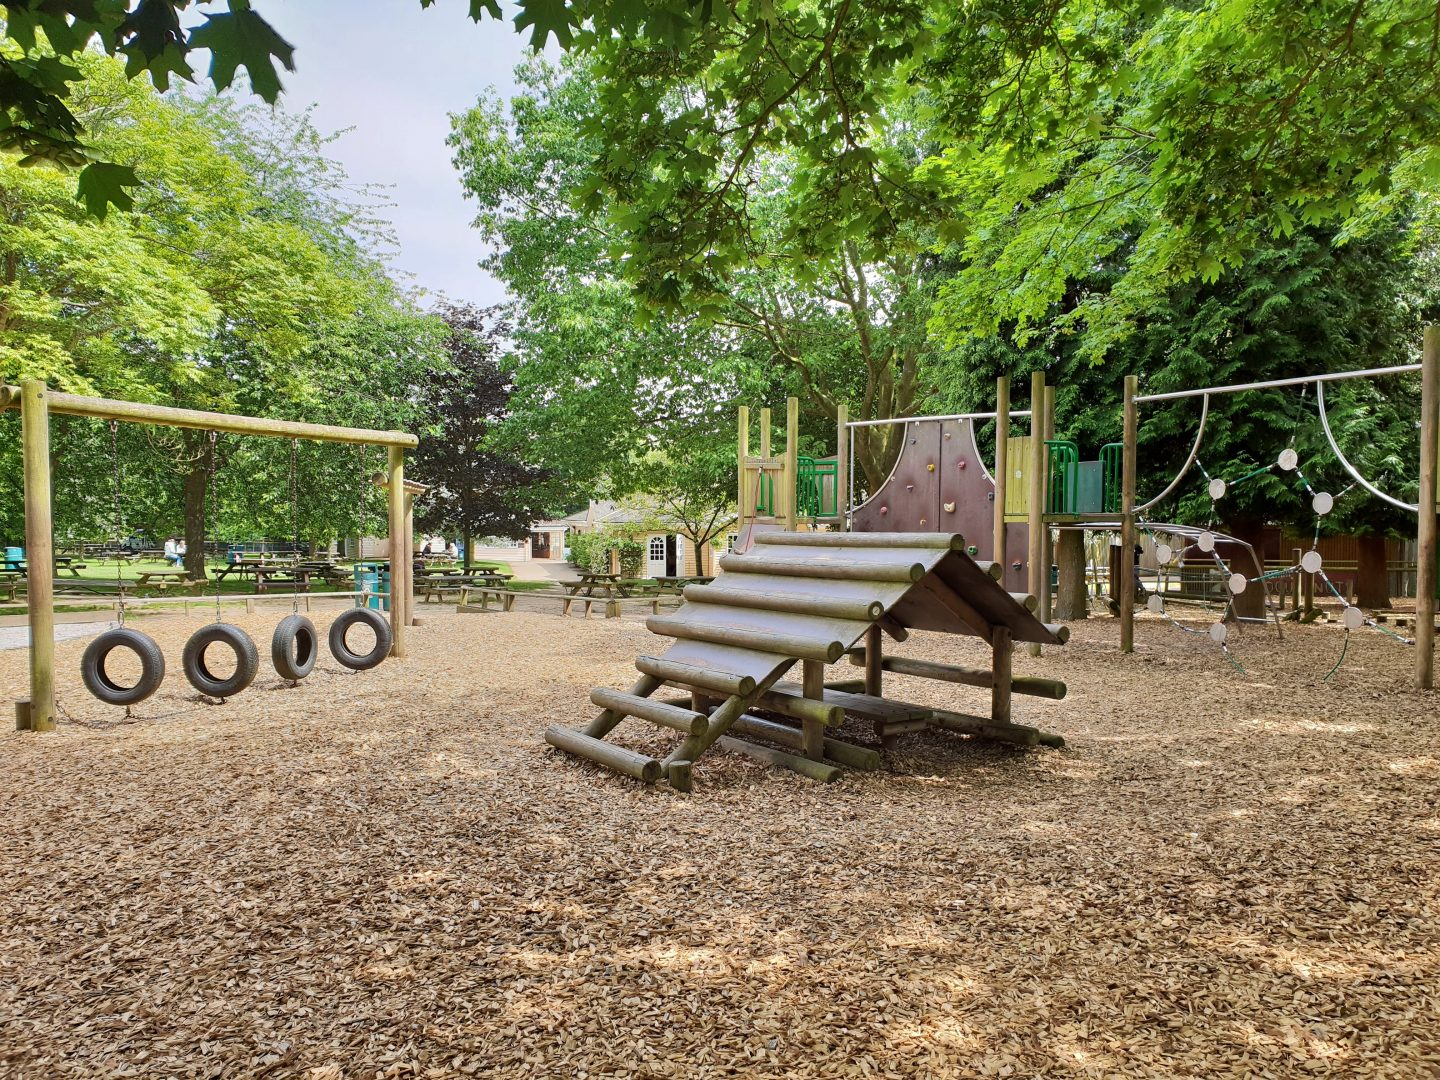 Playground at Howletts in Canterbury, Kent